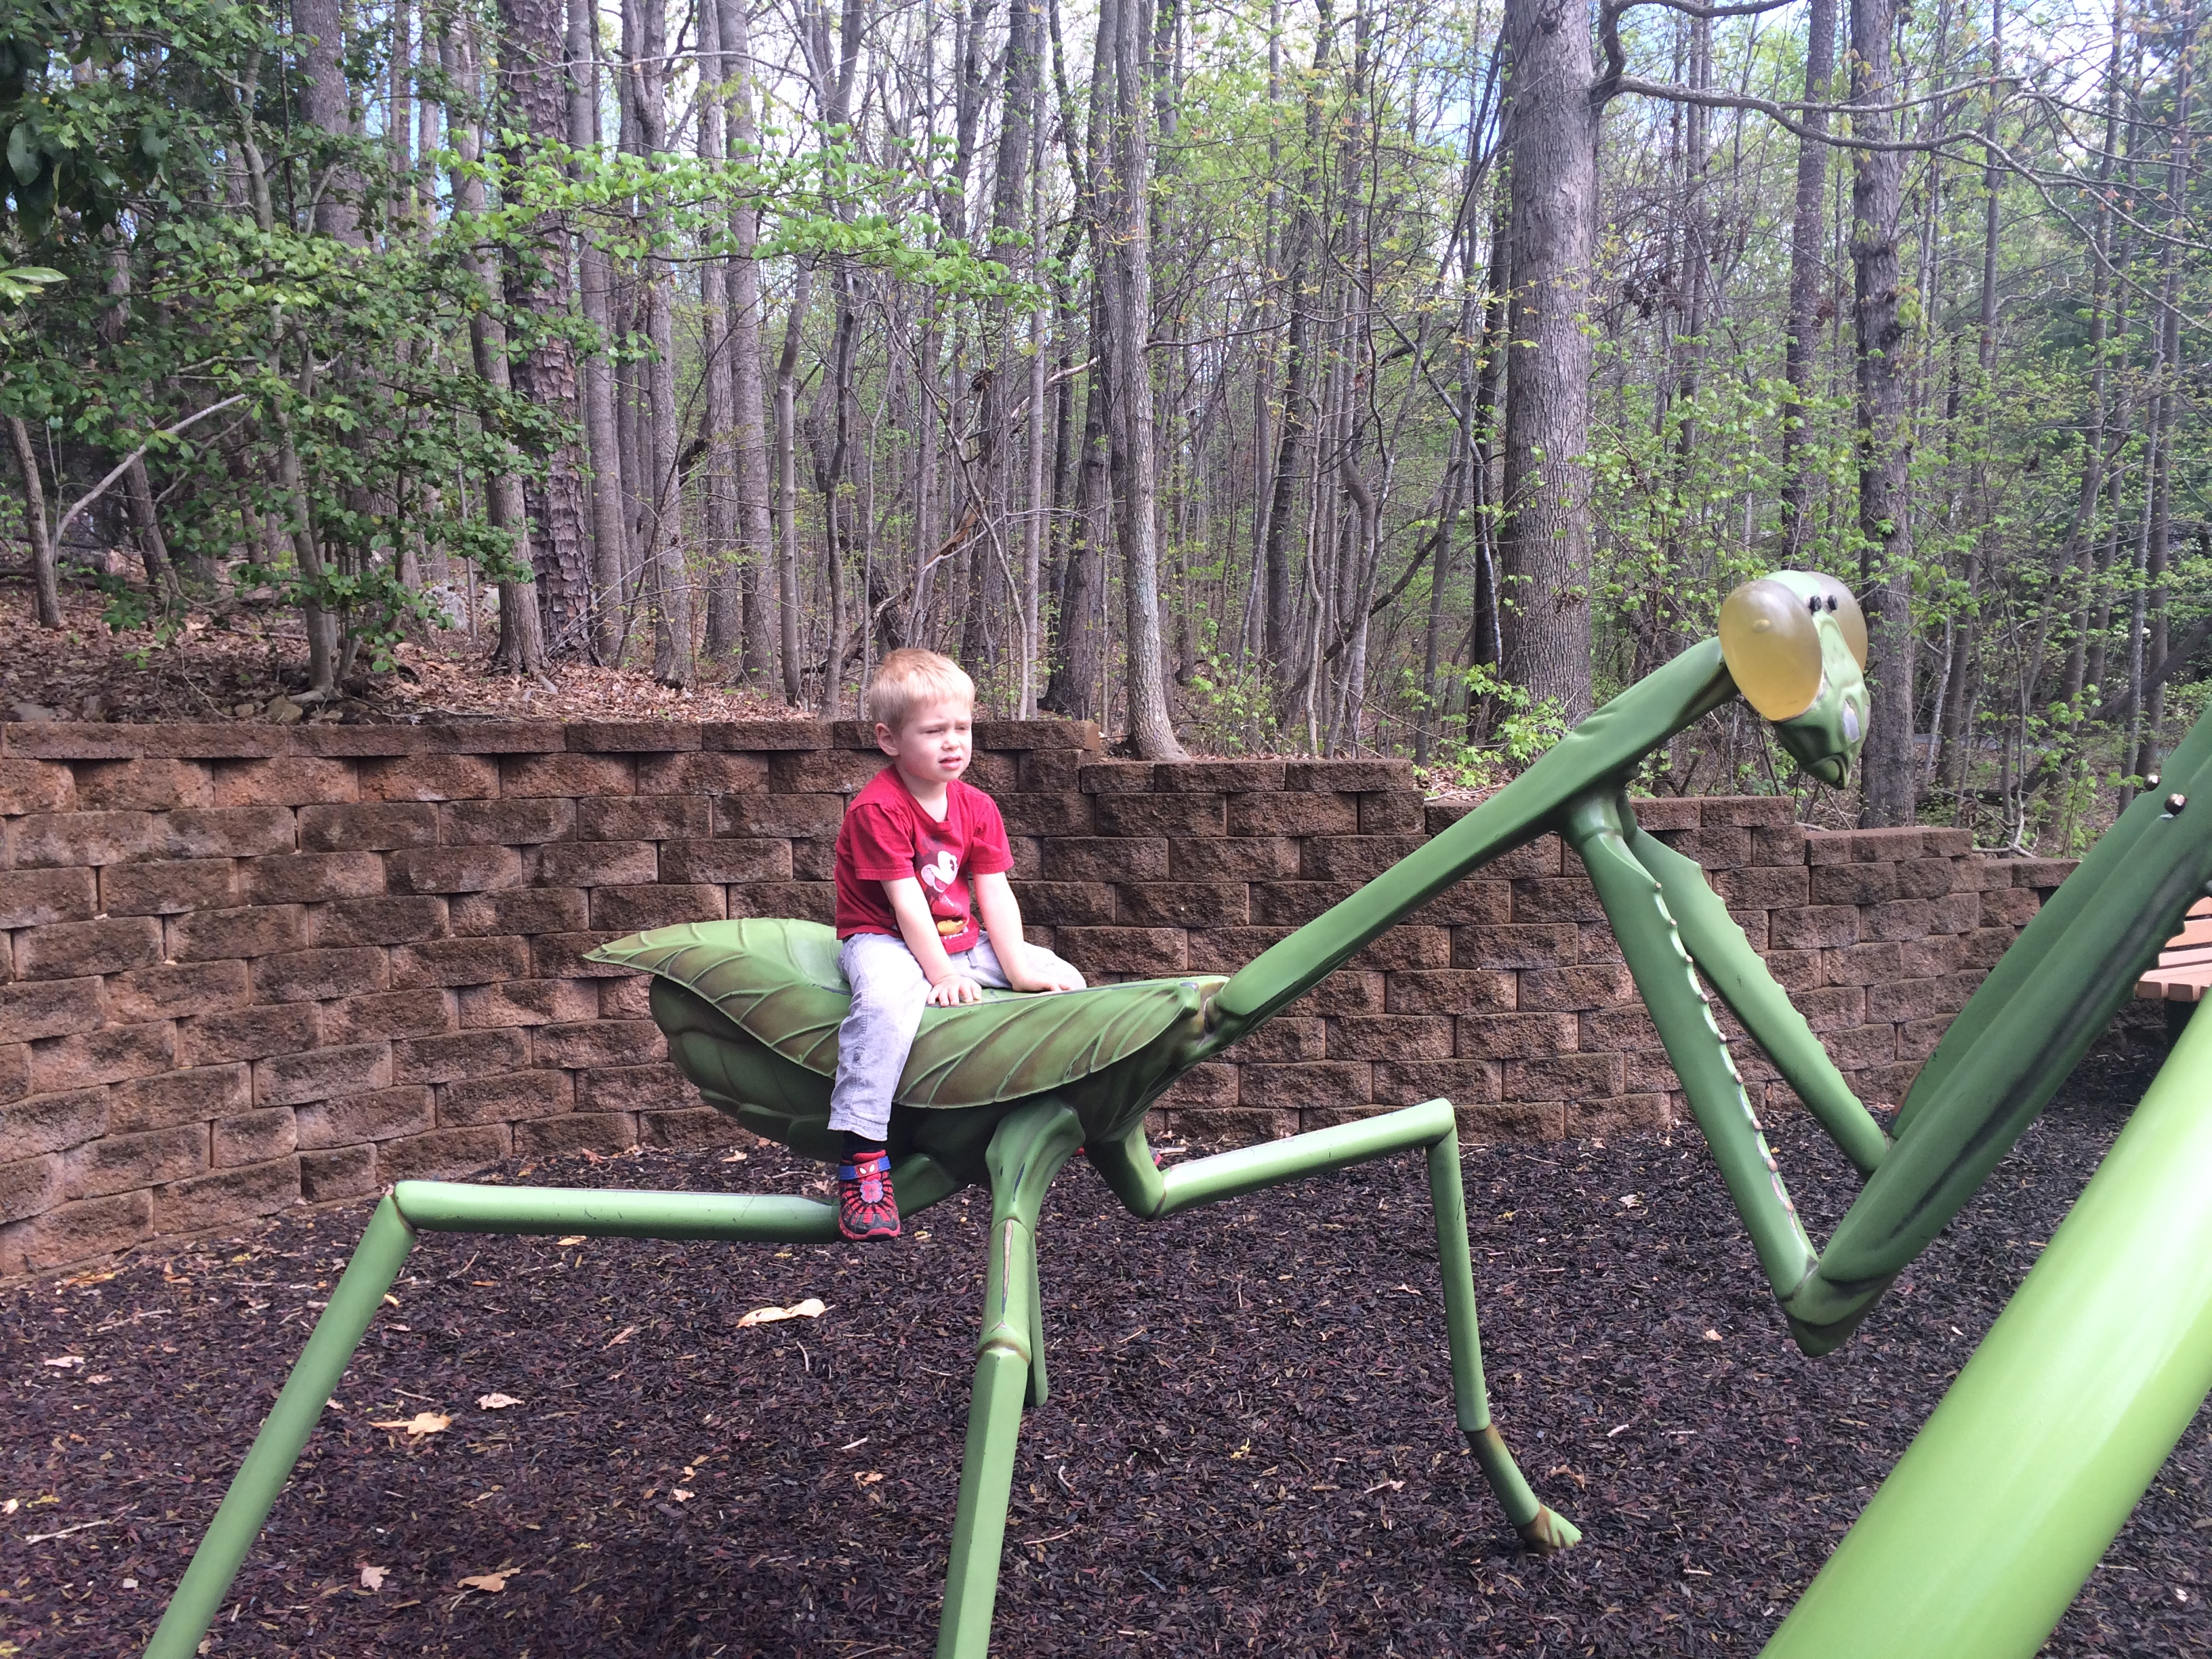 Simon's not so sure about this giant bug